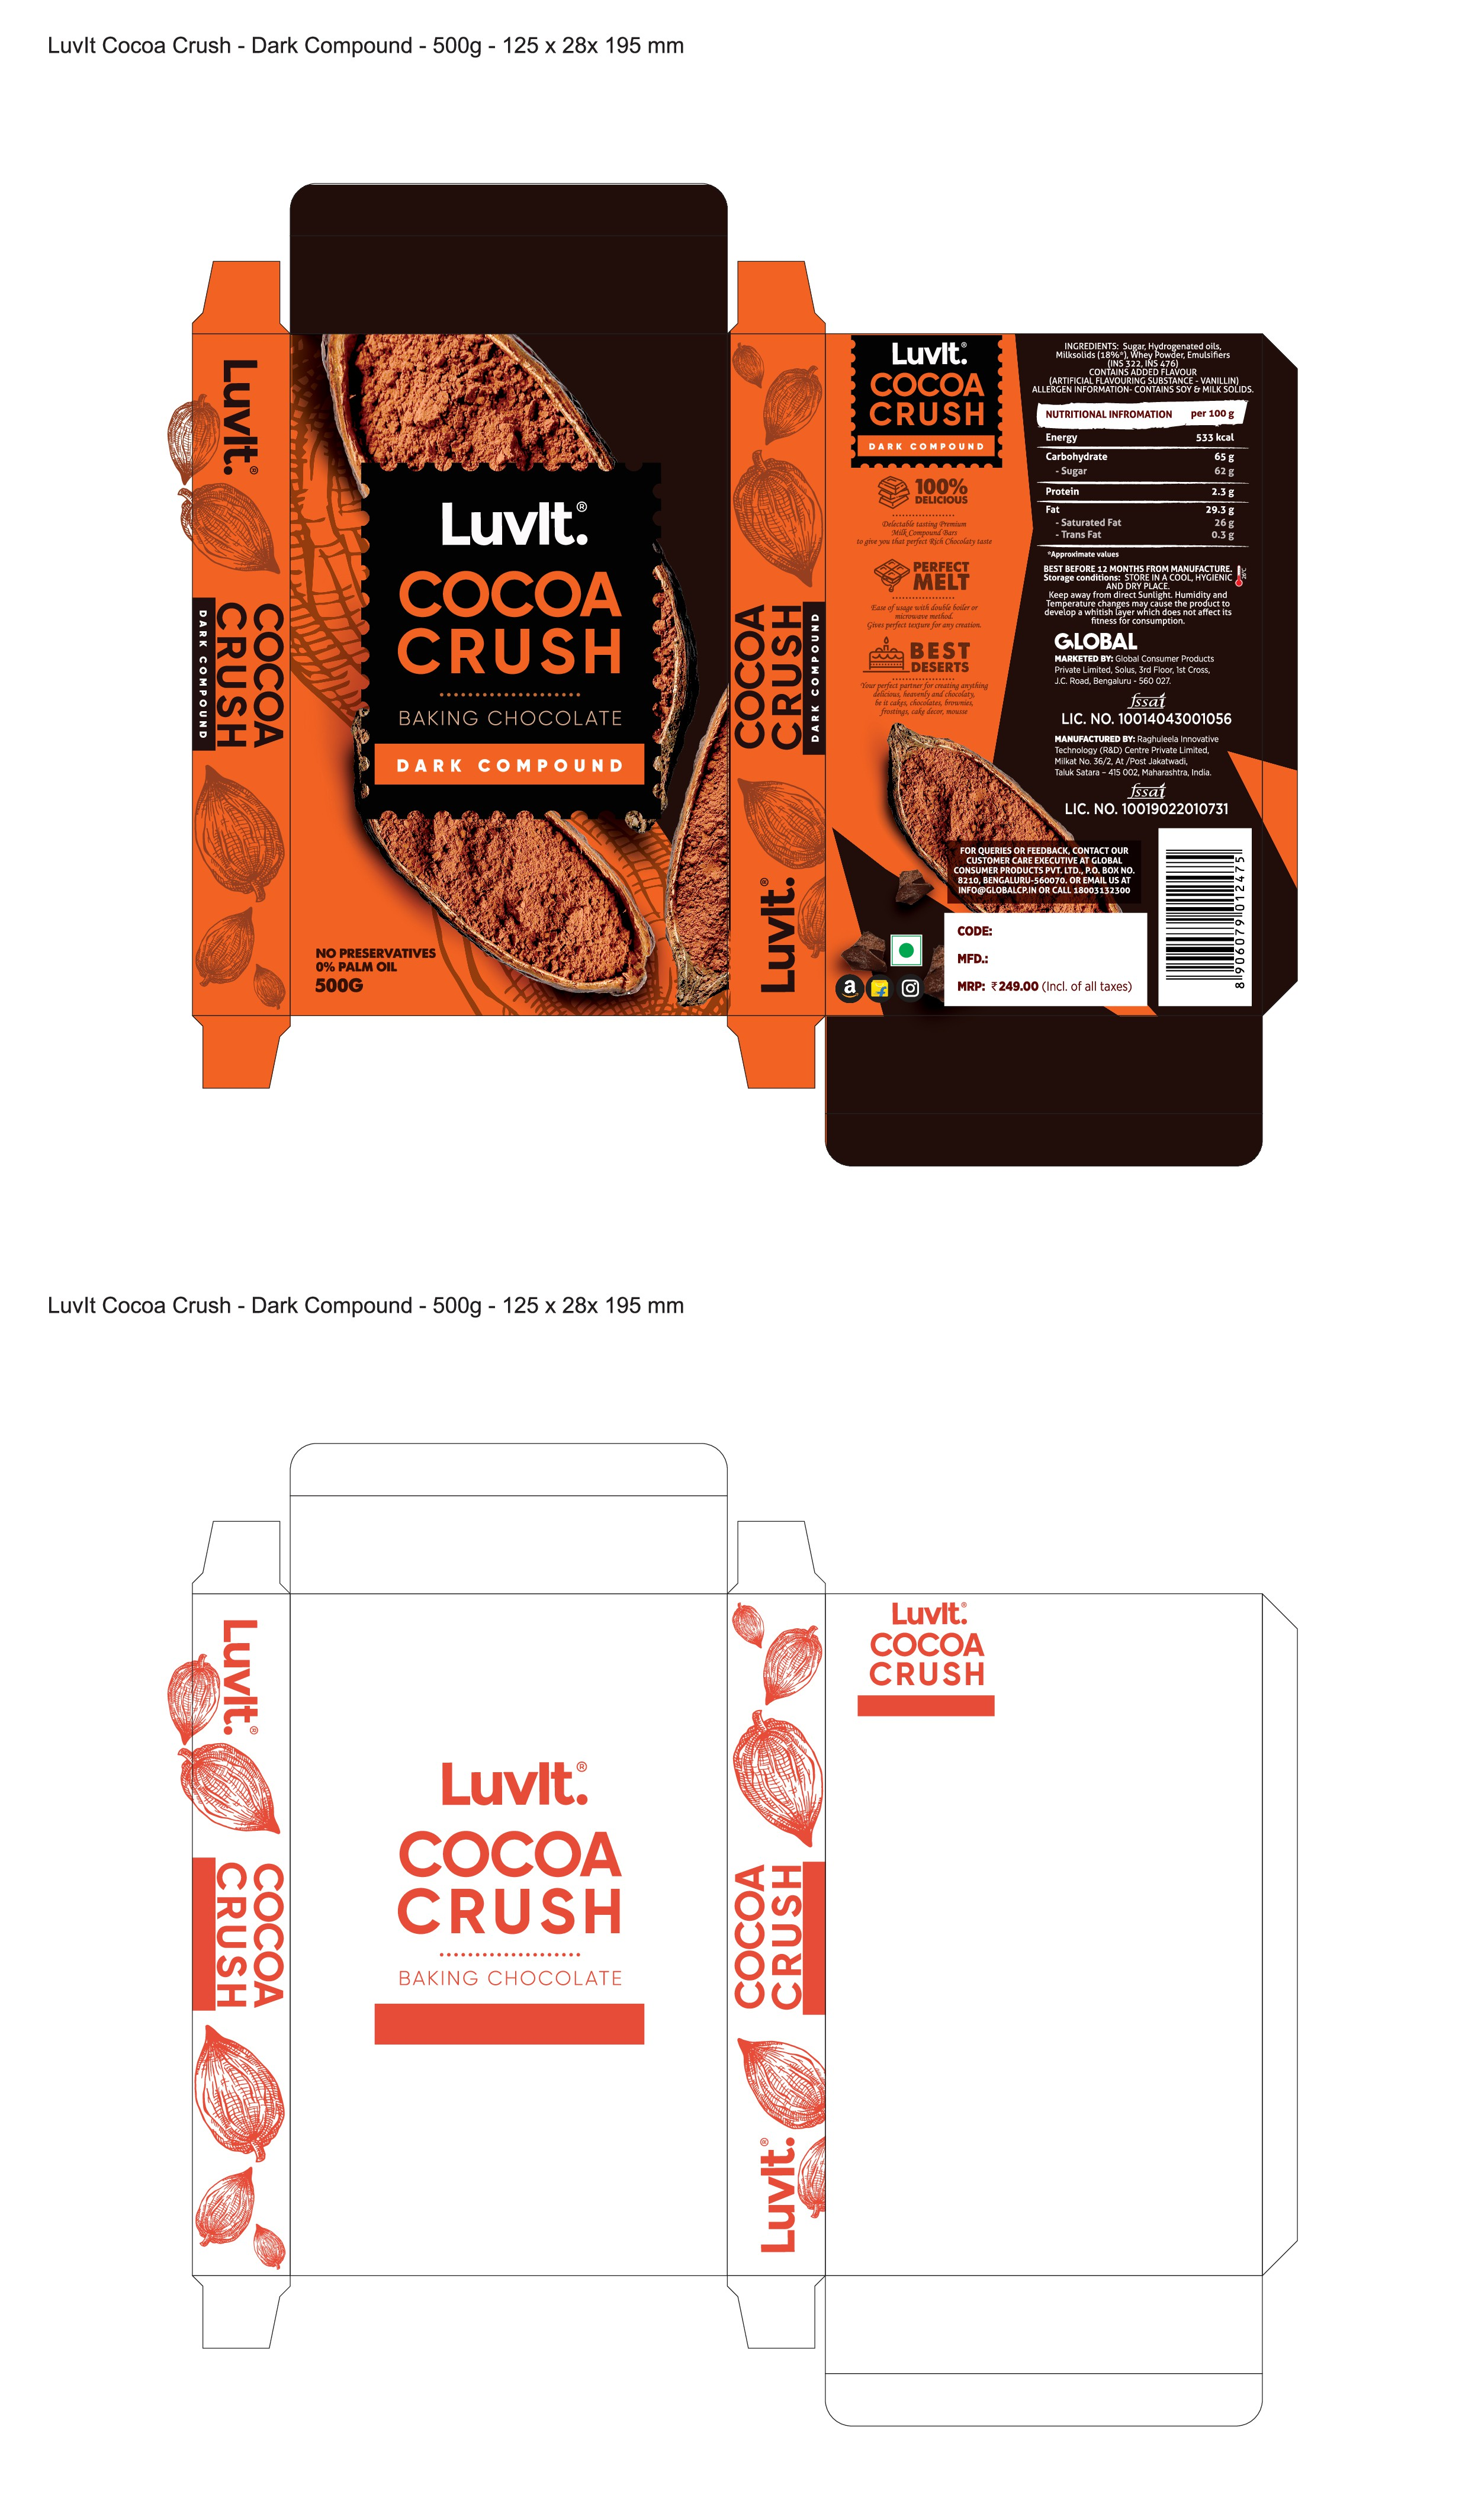 Design a standout label for a couverture chocolate baking bar